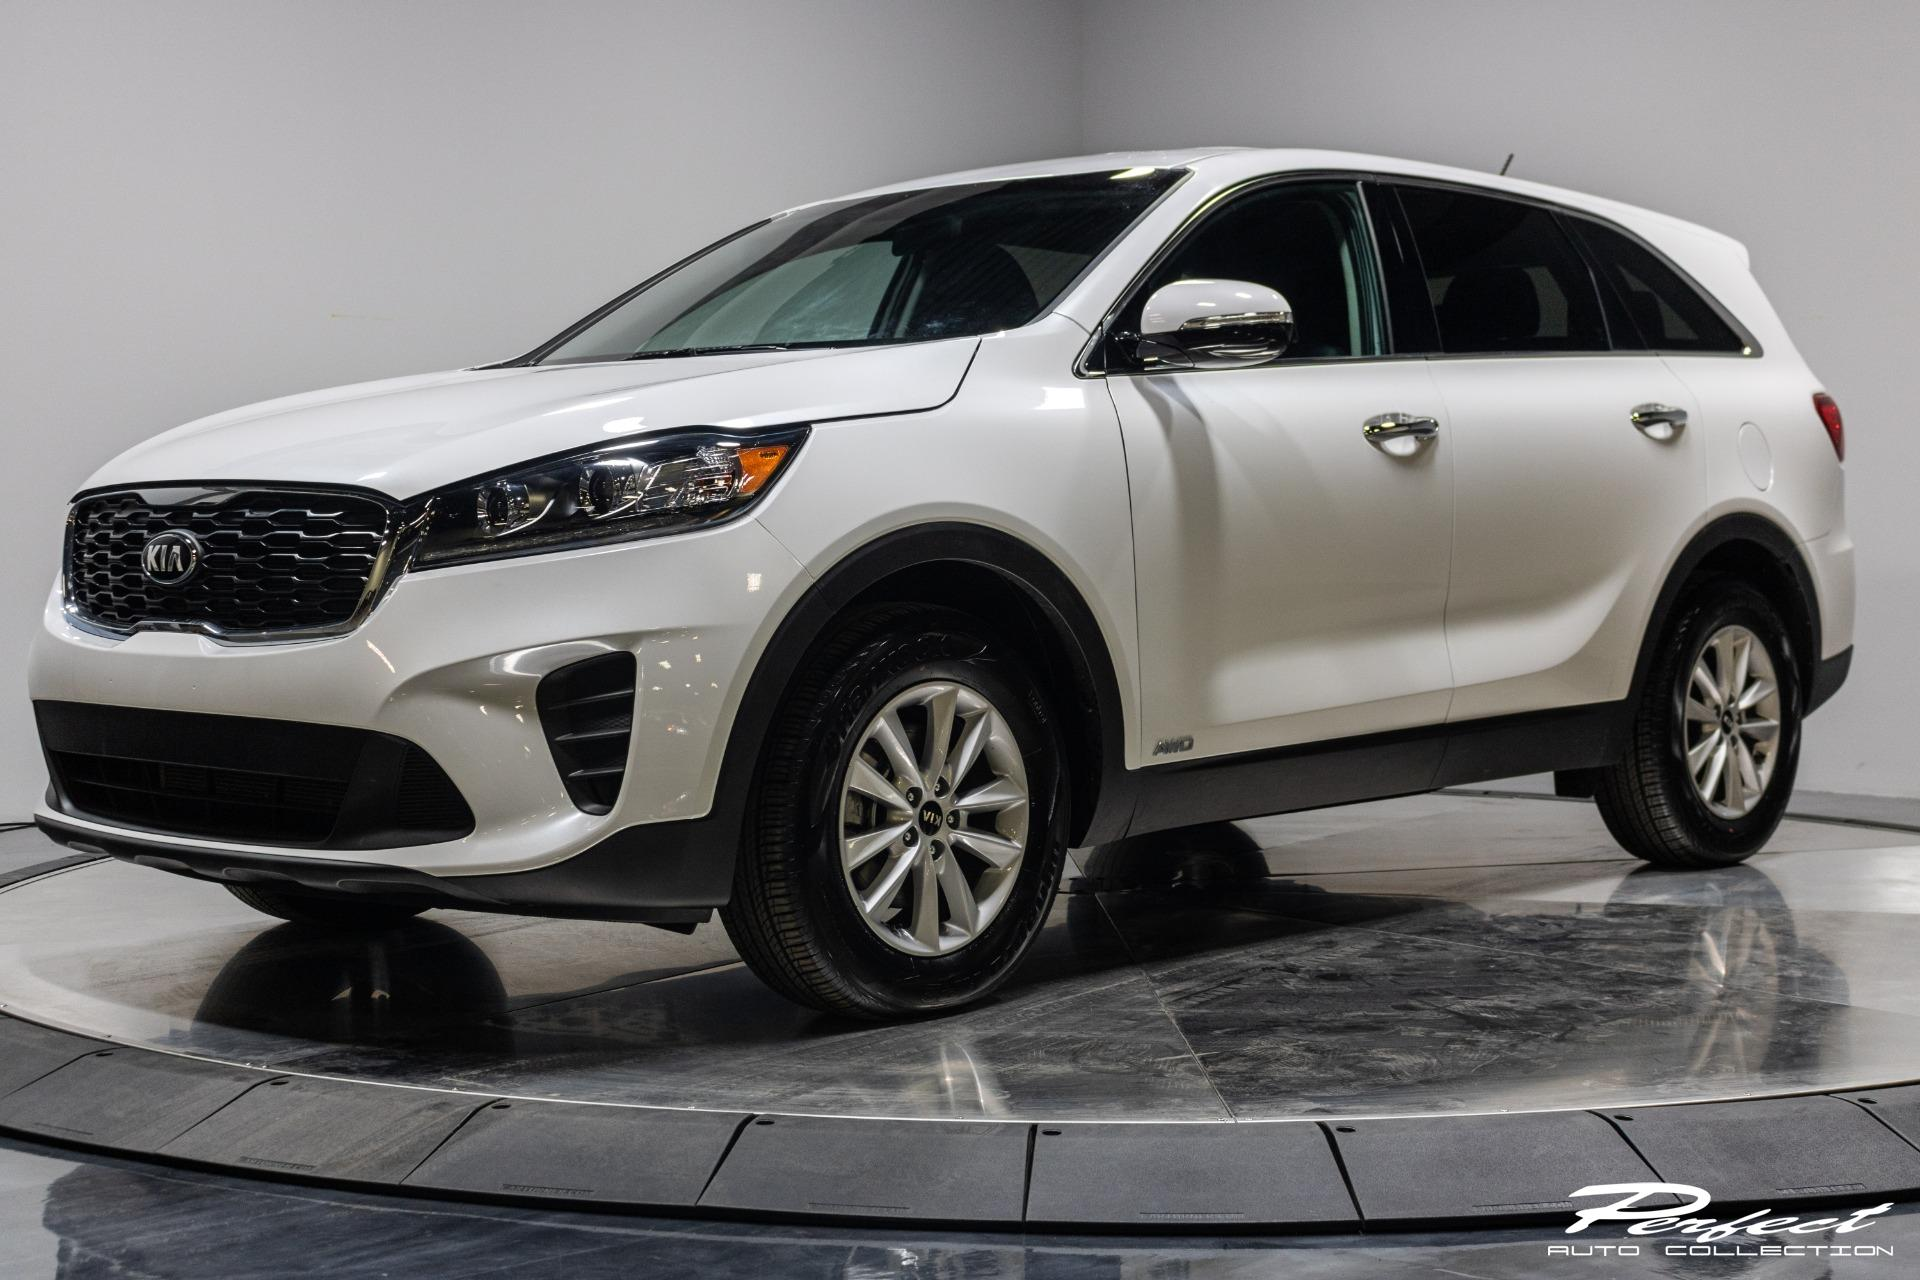 Used 2020 Kia Sorento LX V6 for sale Sold at Perfect Auto Collection in Akron OH 44310 1